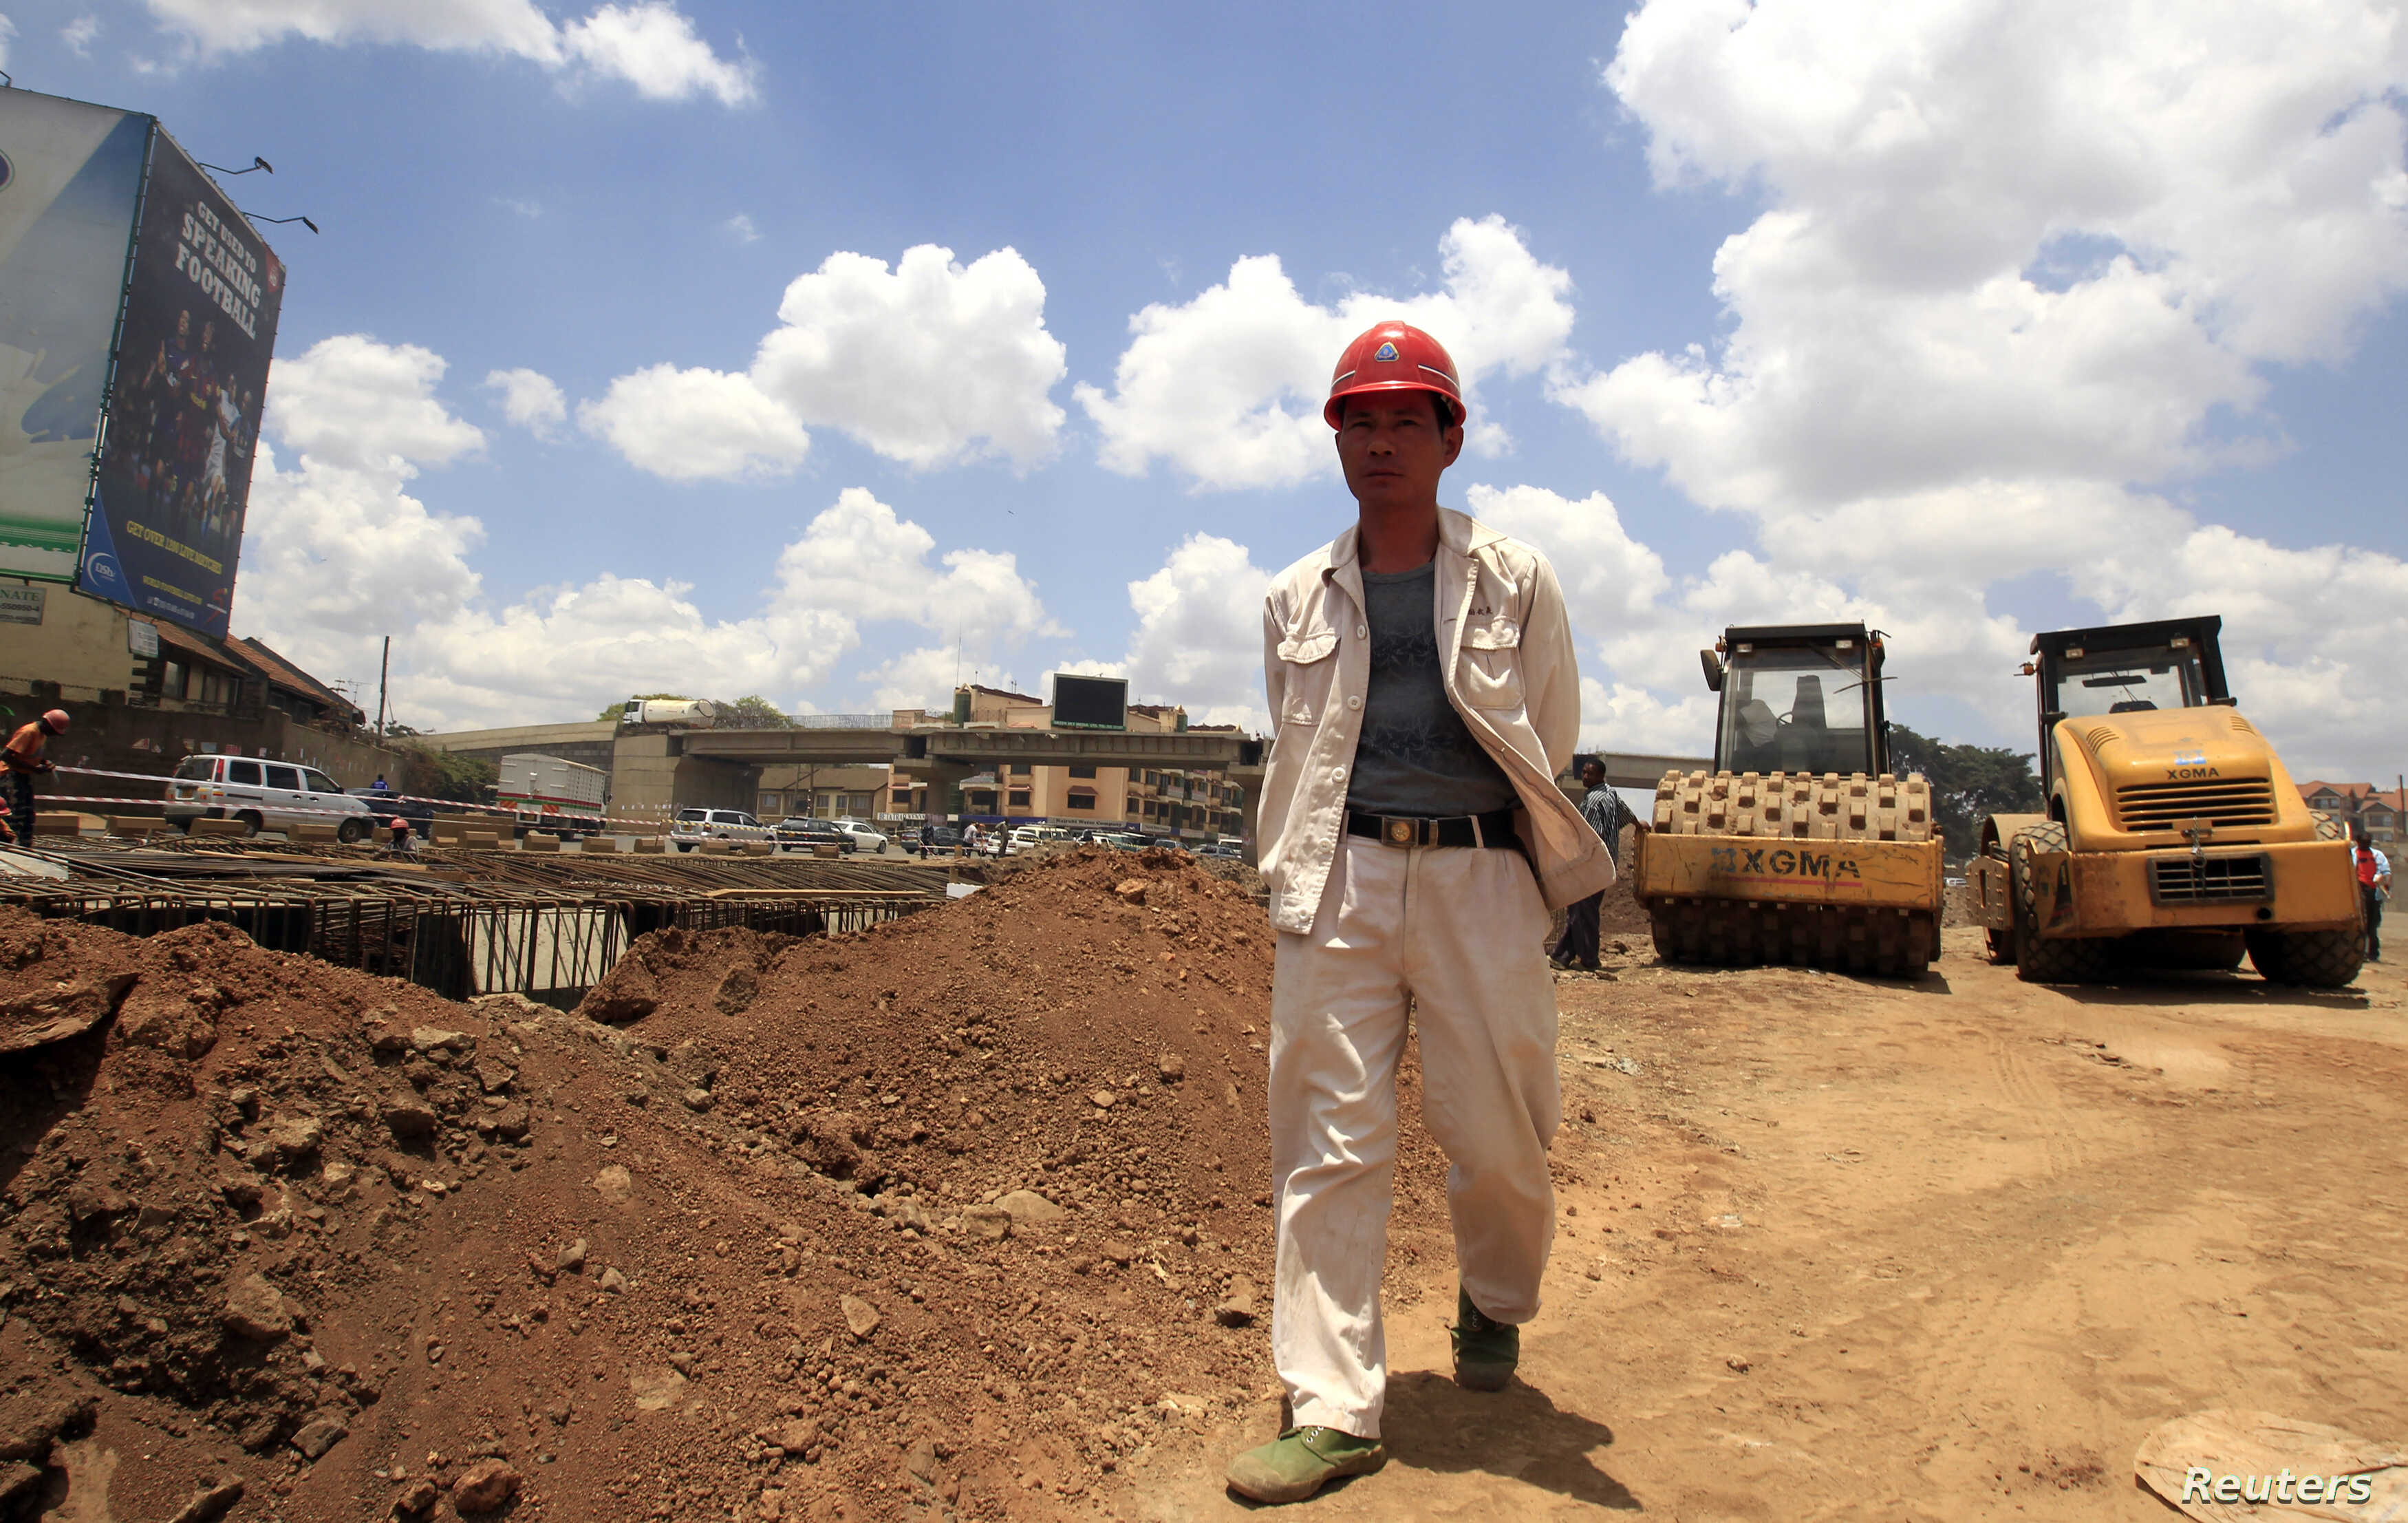 A site manager from China Wuyi, Sinohydro and Shengeli Engineering Construction Group checks progress on Kenya's Nairobi-Thika highway project in 2011. The $28 billion road is paid for by China, Kenya and the African Development Bank.